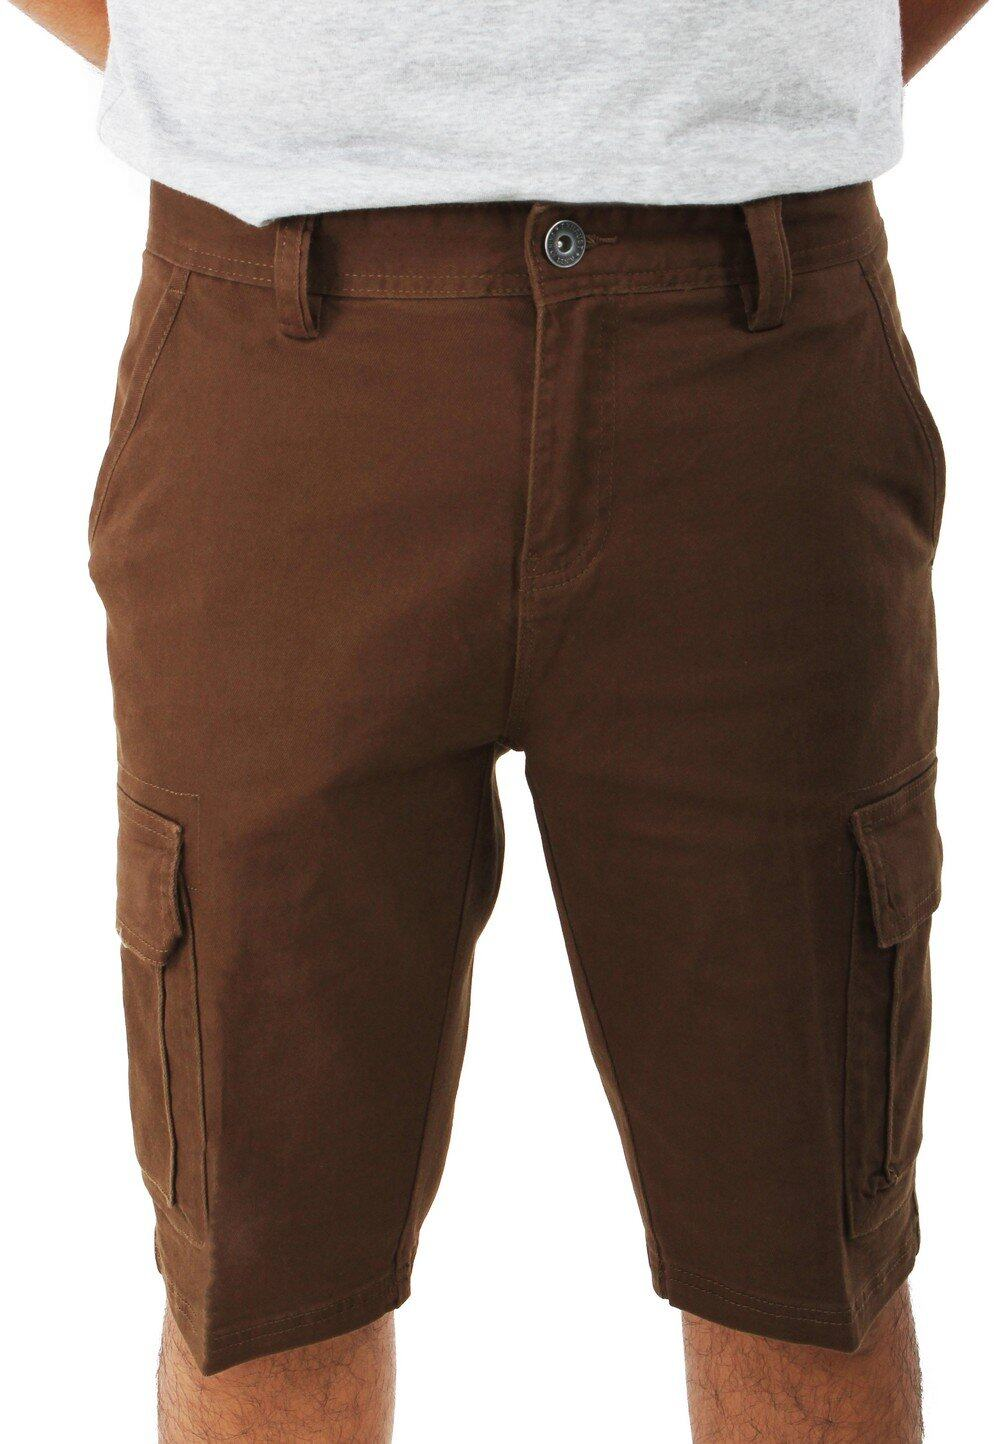 Exhaust Cargo Multipocket Short Pants 767